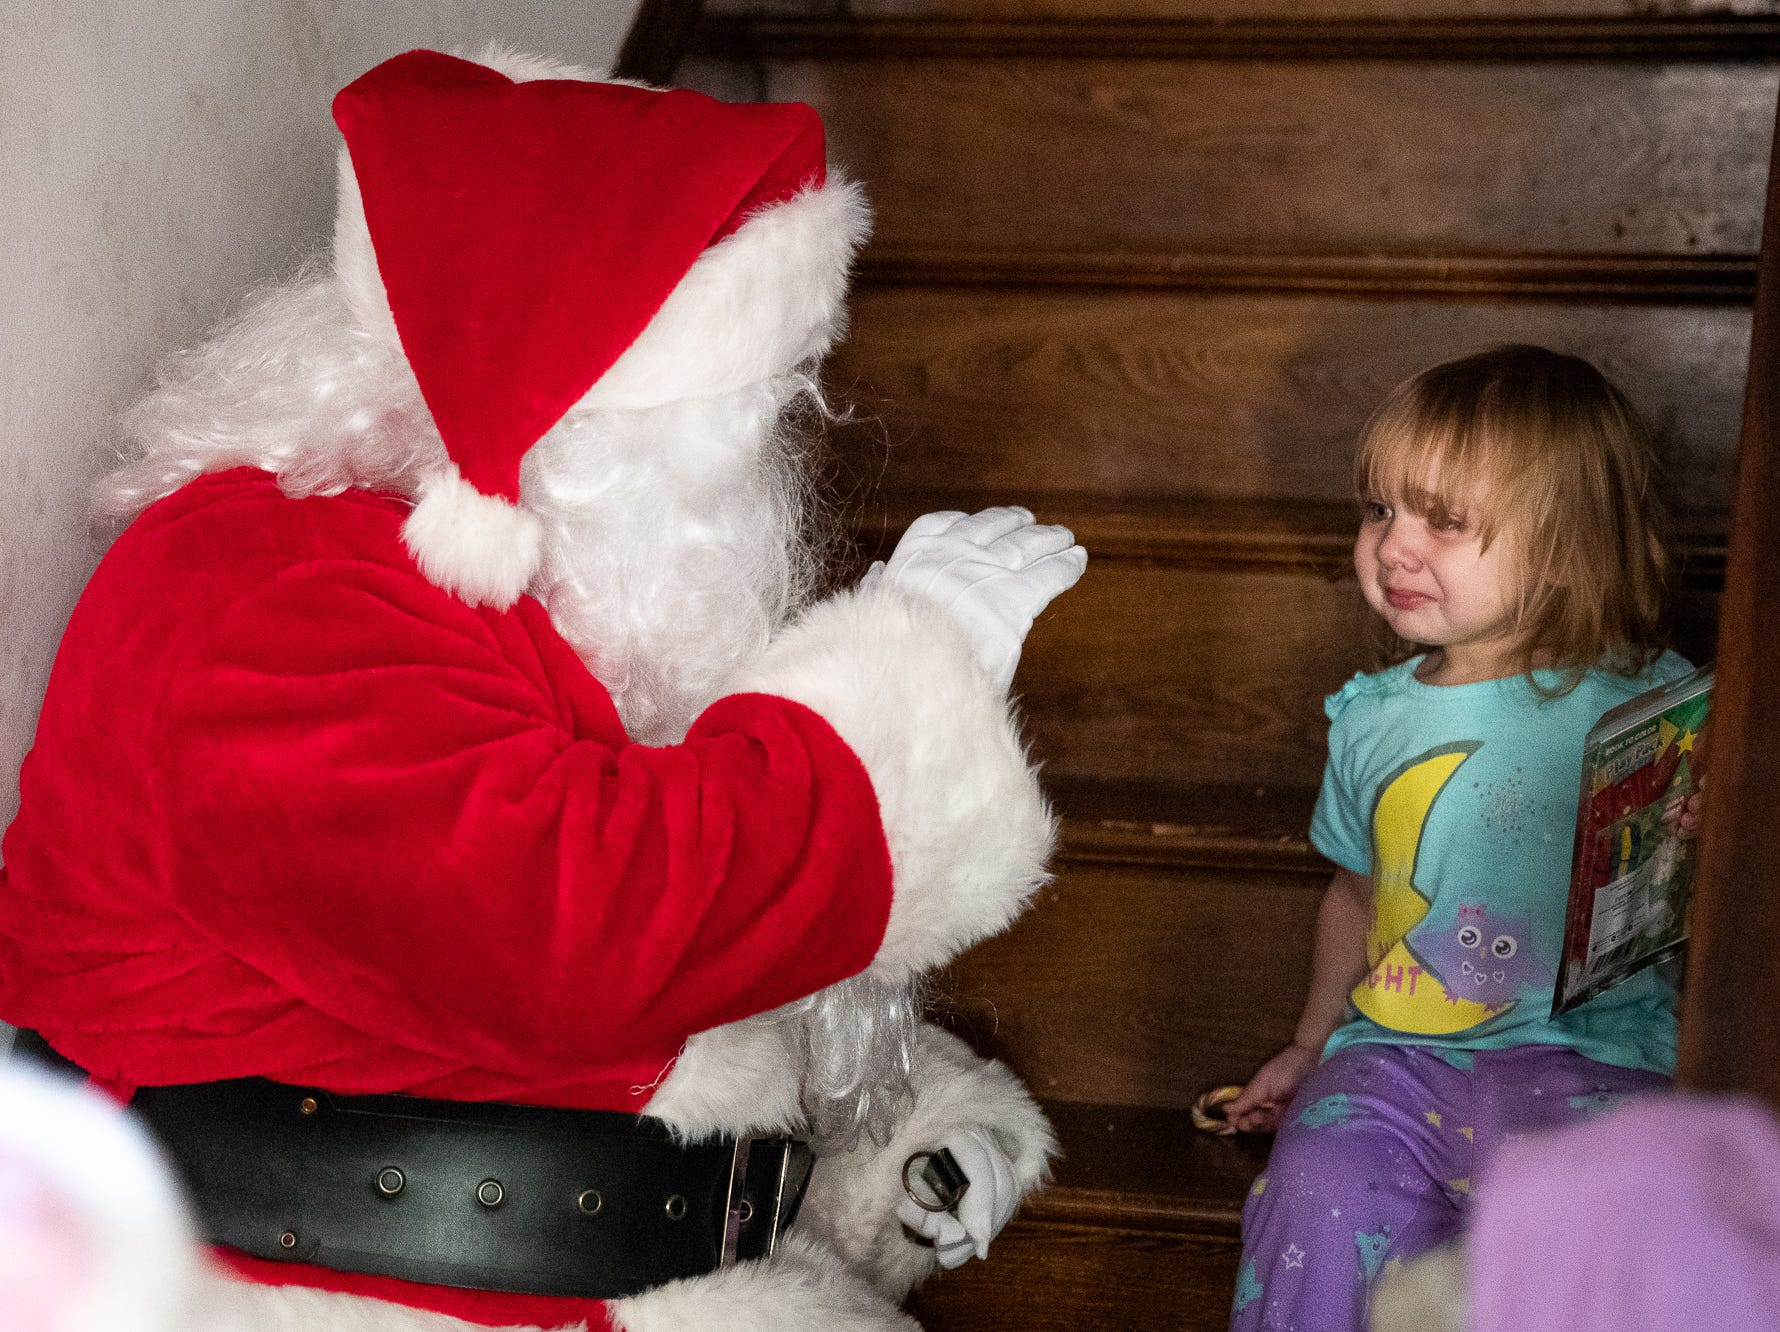 Sofia, 2, reacts to Santa, played by firefighter Wayne Reid, during the S.A.V.E.S Project Santa, Saturday, Dec. 22, 2018, in McSherrystown Borough. The S.A.V.E.S Project Santa donated food, toys, and clothing to 12 local families in need.